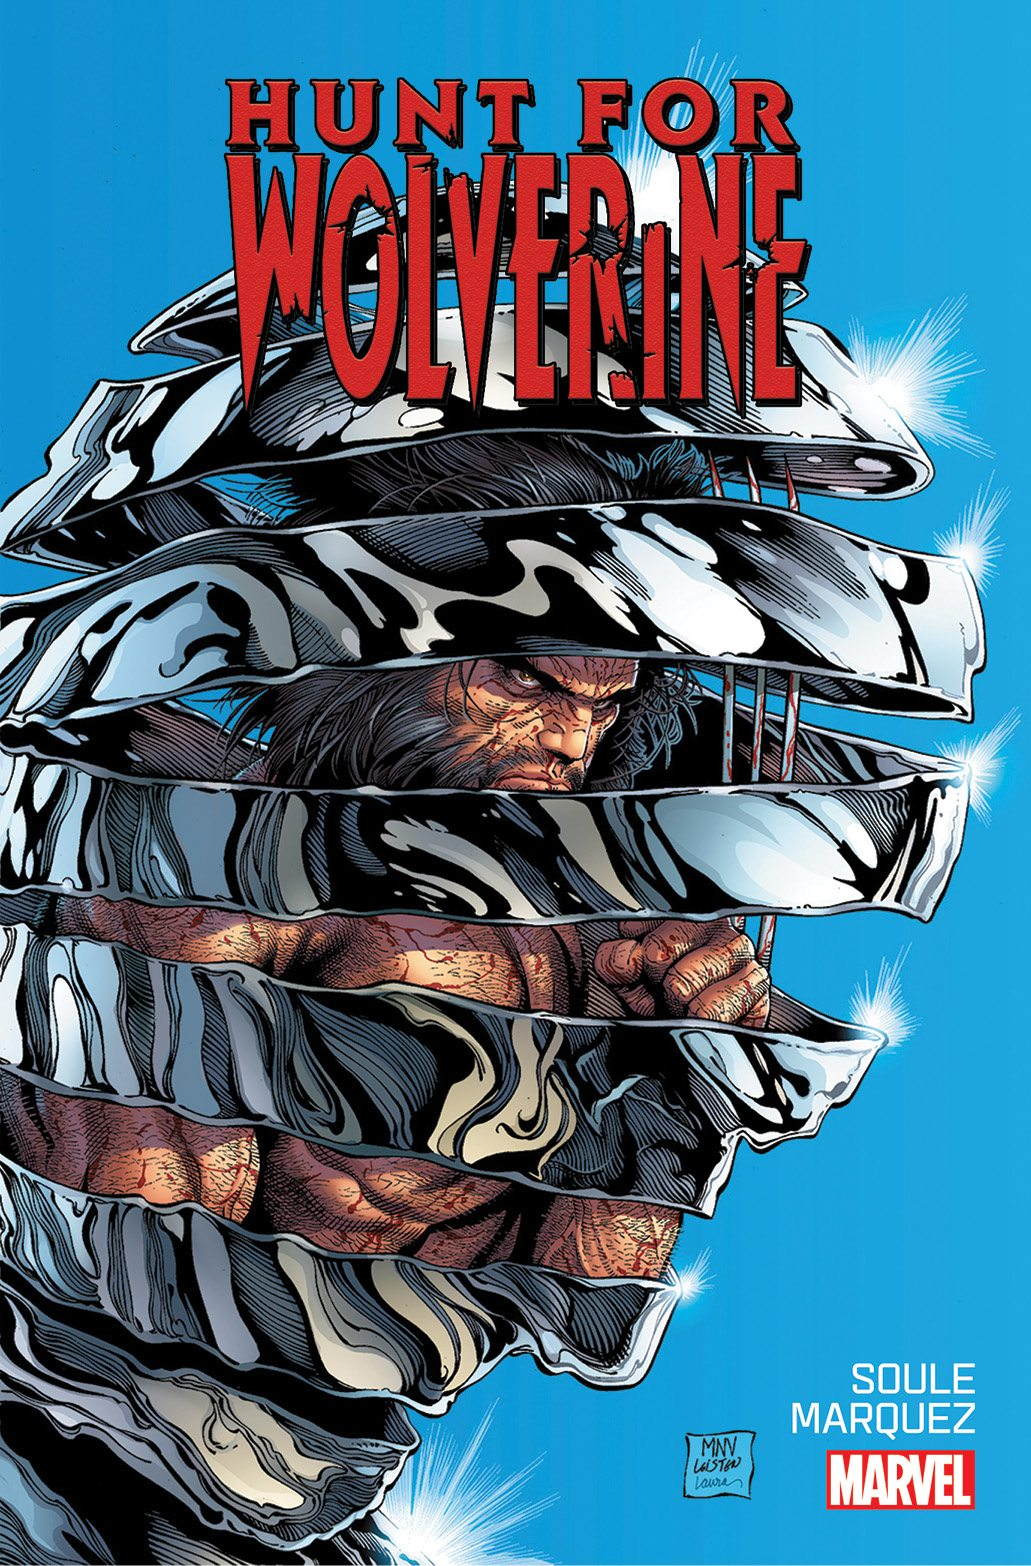 The Hunt for Wolverine begins this April as Logan makes his grand return to the Marvel universe